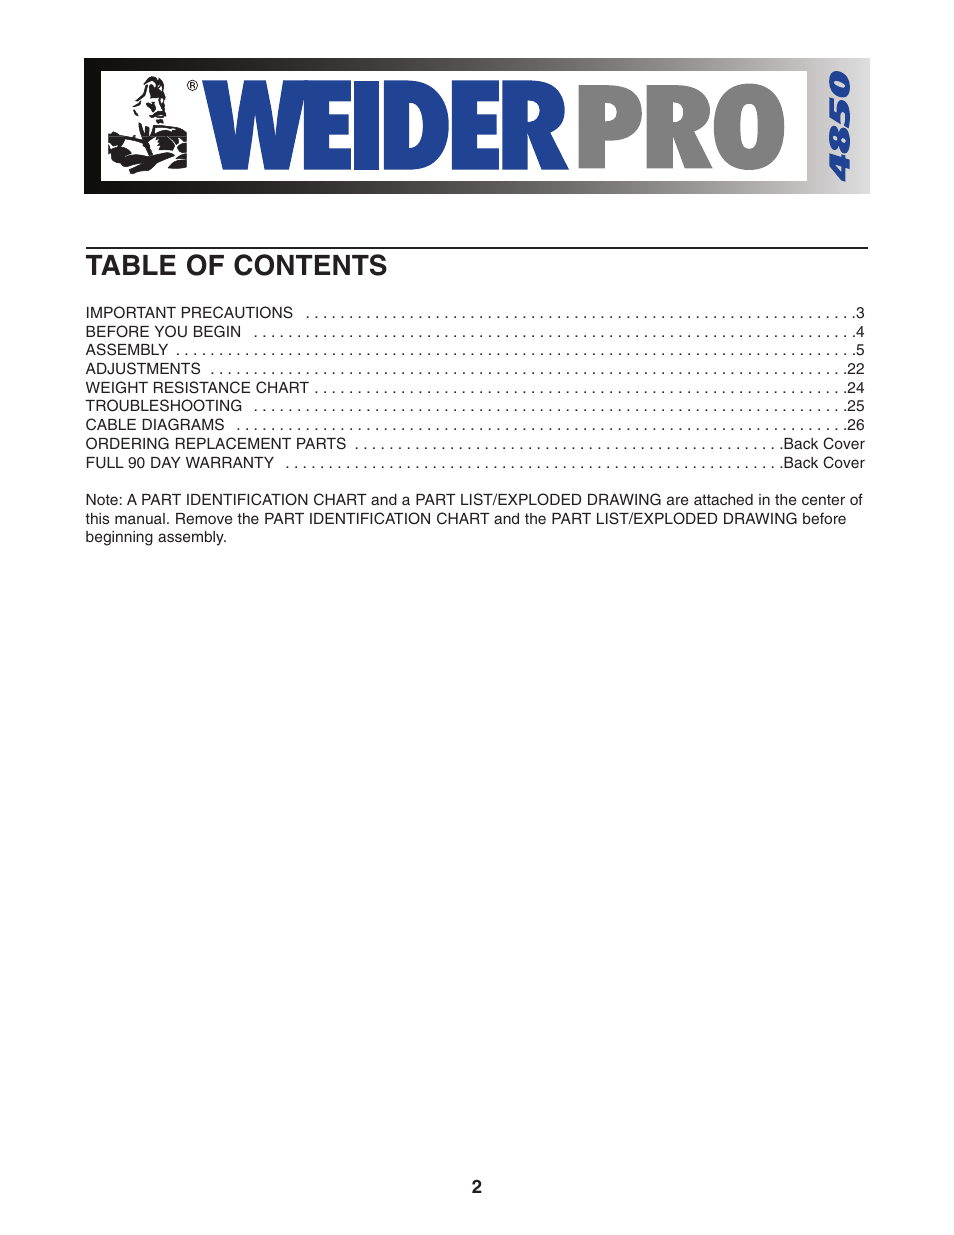 Cable diagrams | weider pro 4850 831. 153932 user manual | page 26 / 33.